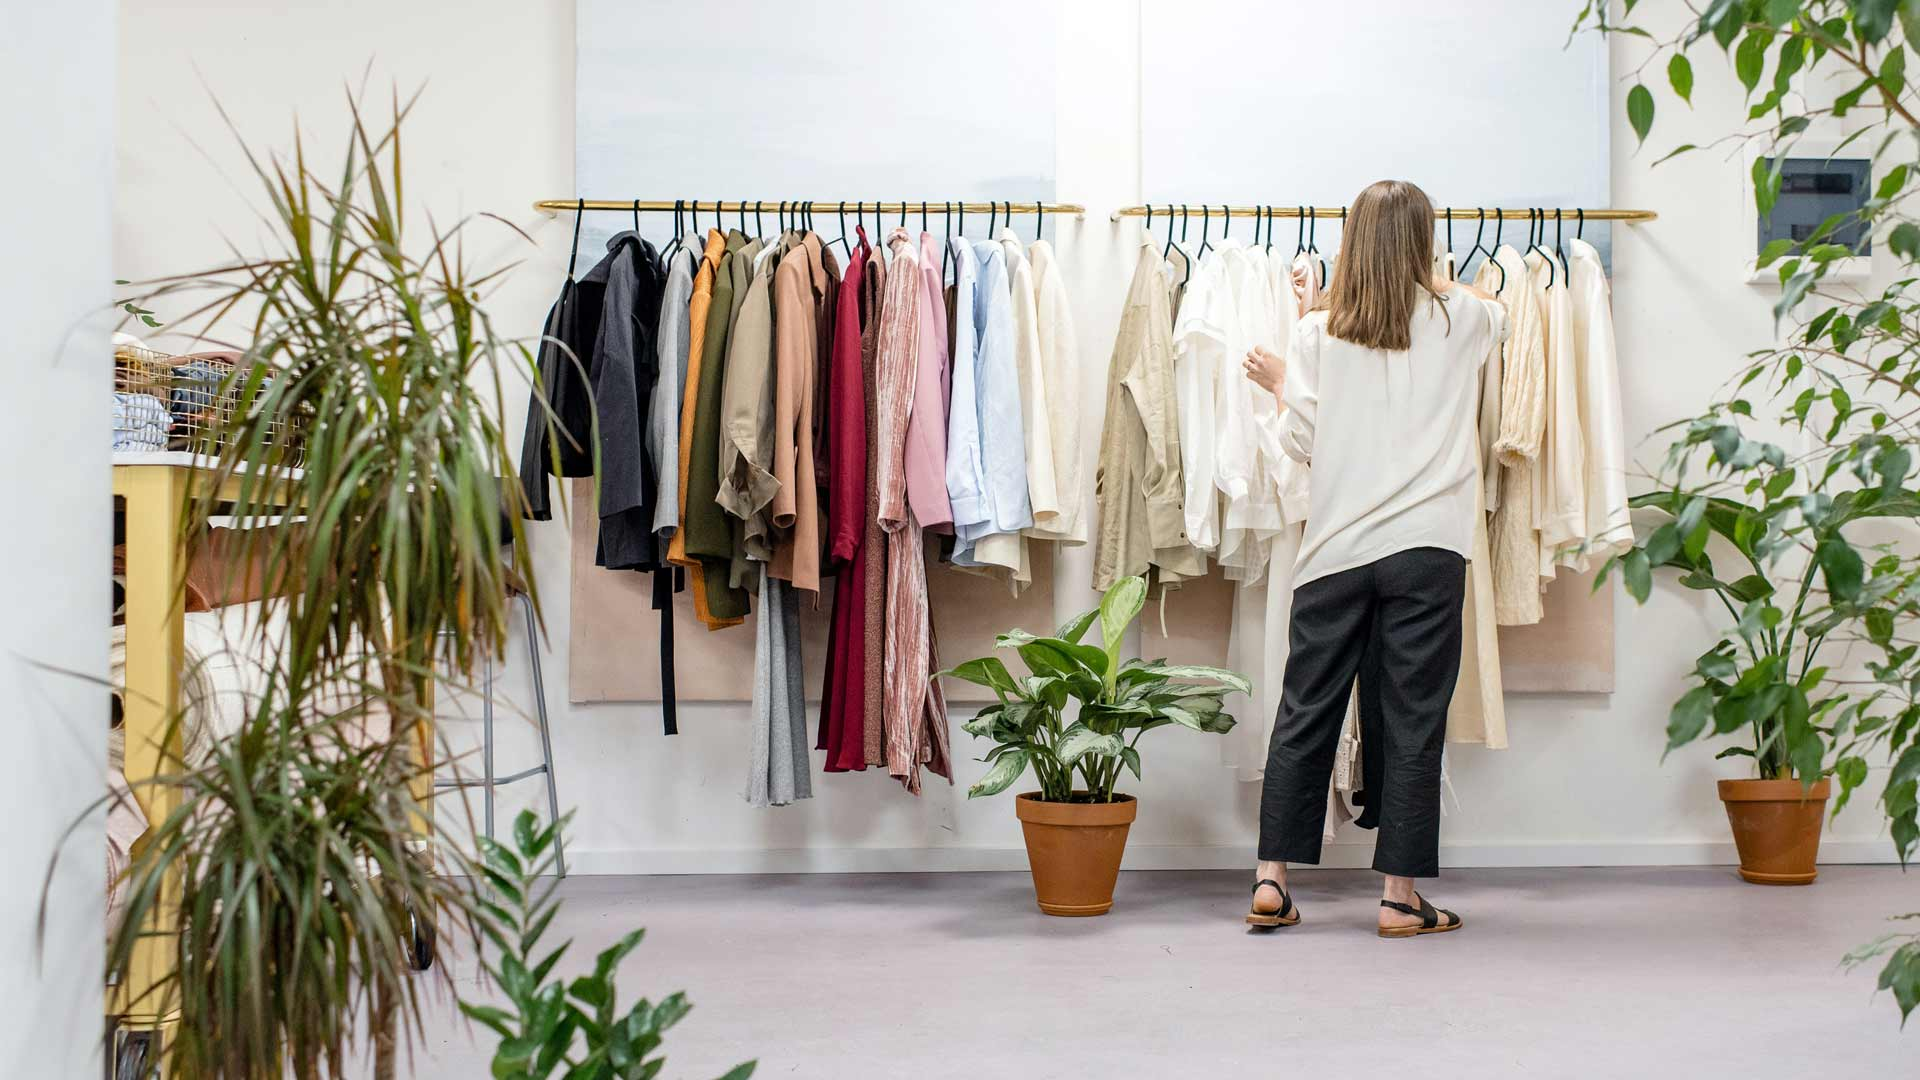 This New Digital Map Shows You Where You Can Find Australia's Ethical Fashion Shops